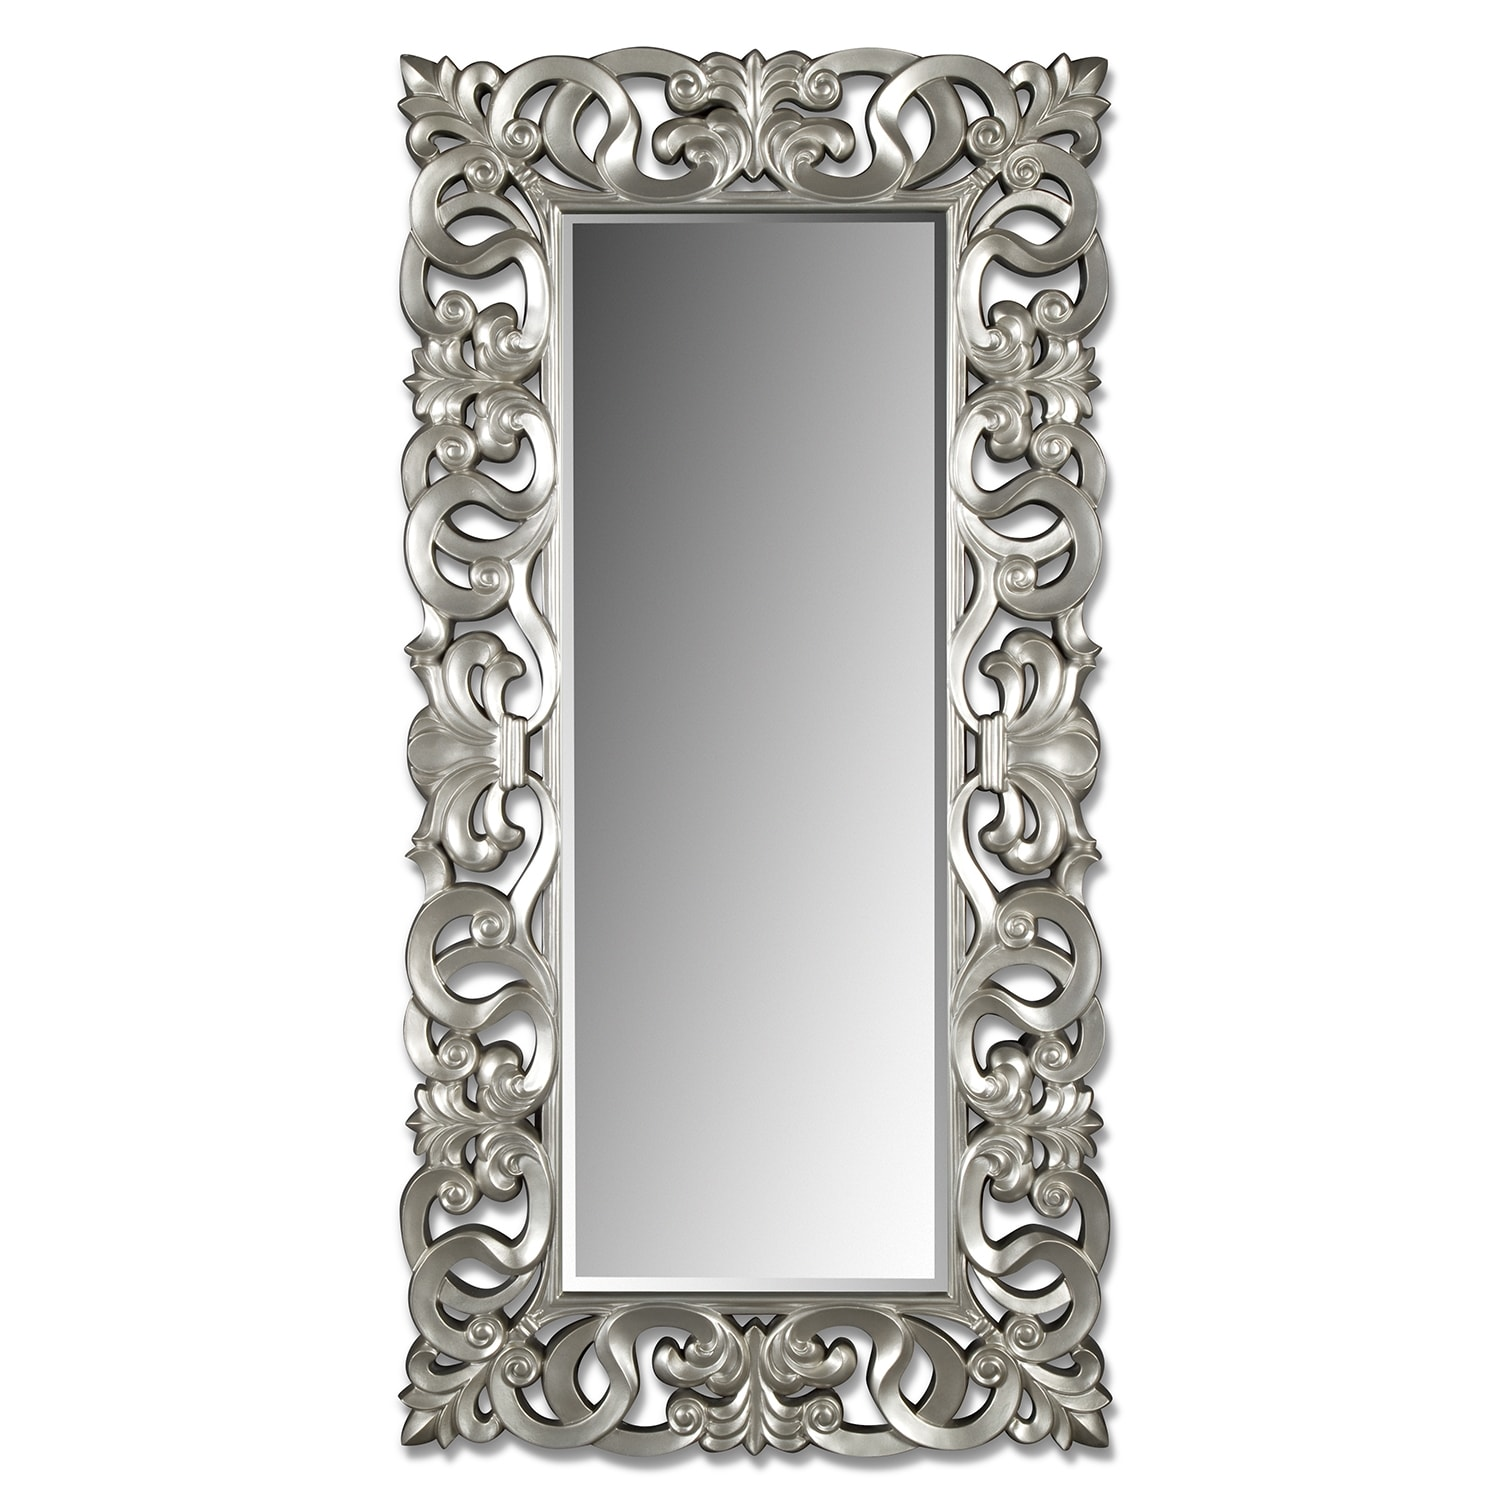 Home Accessories - Silver Scroll Mirror